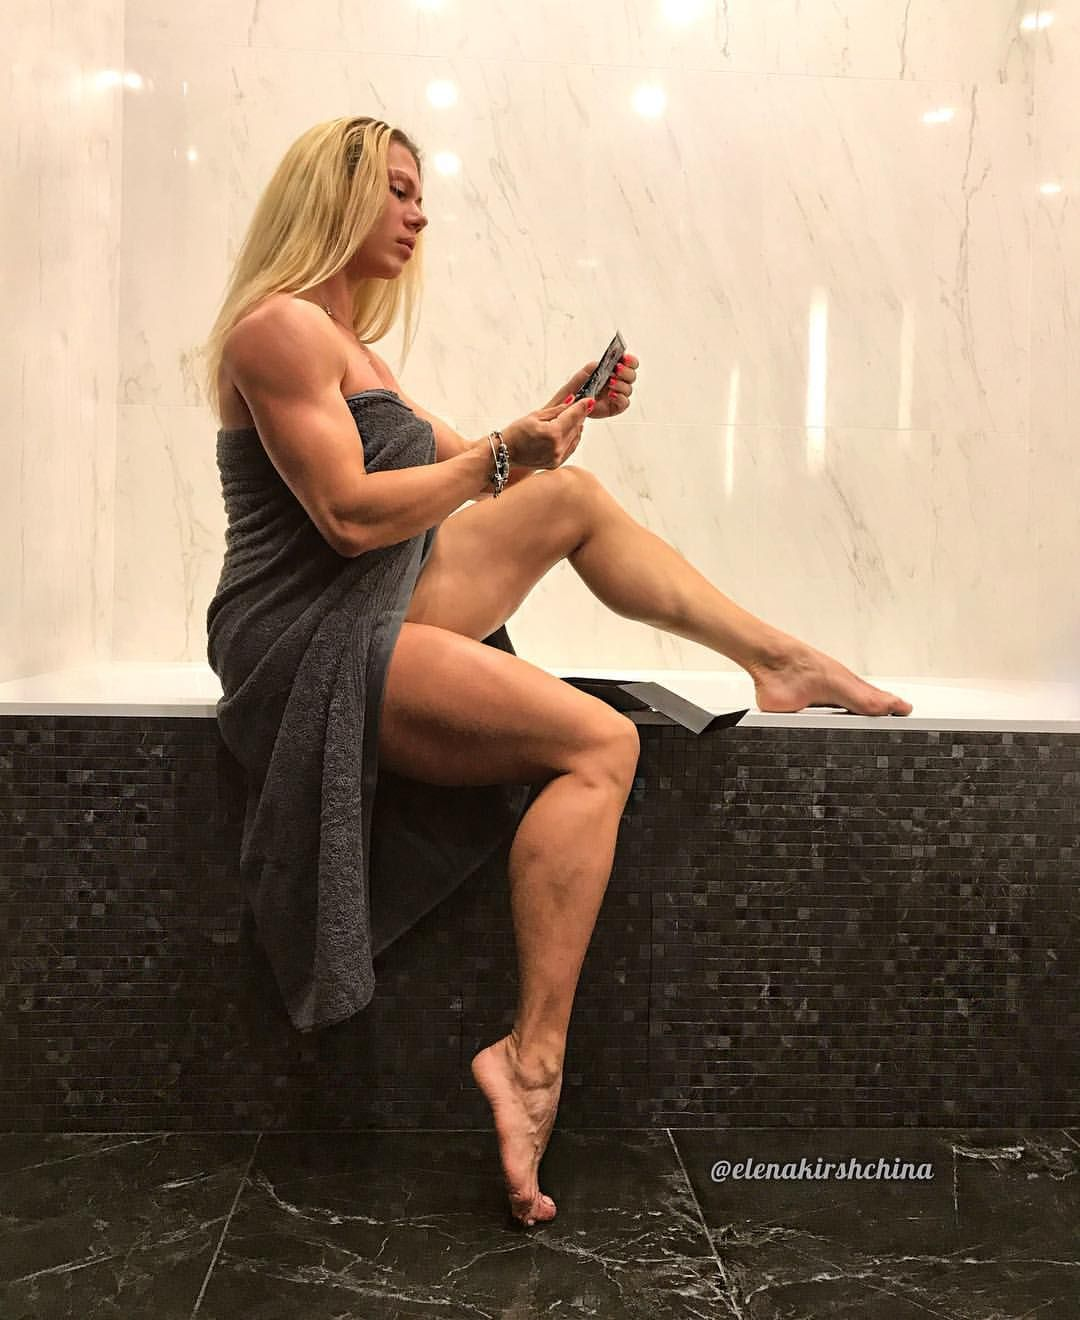 Apologise, but, sexy barefoot bodybuilding woman